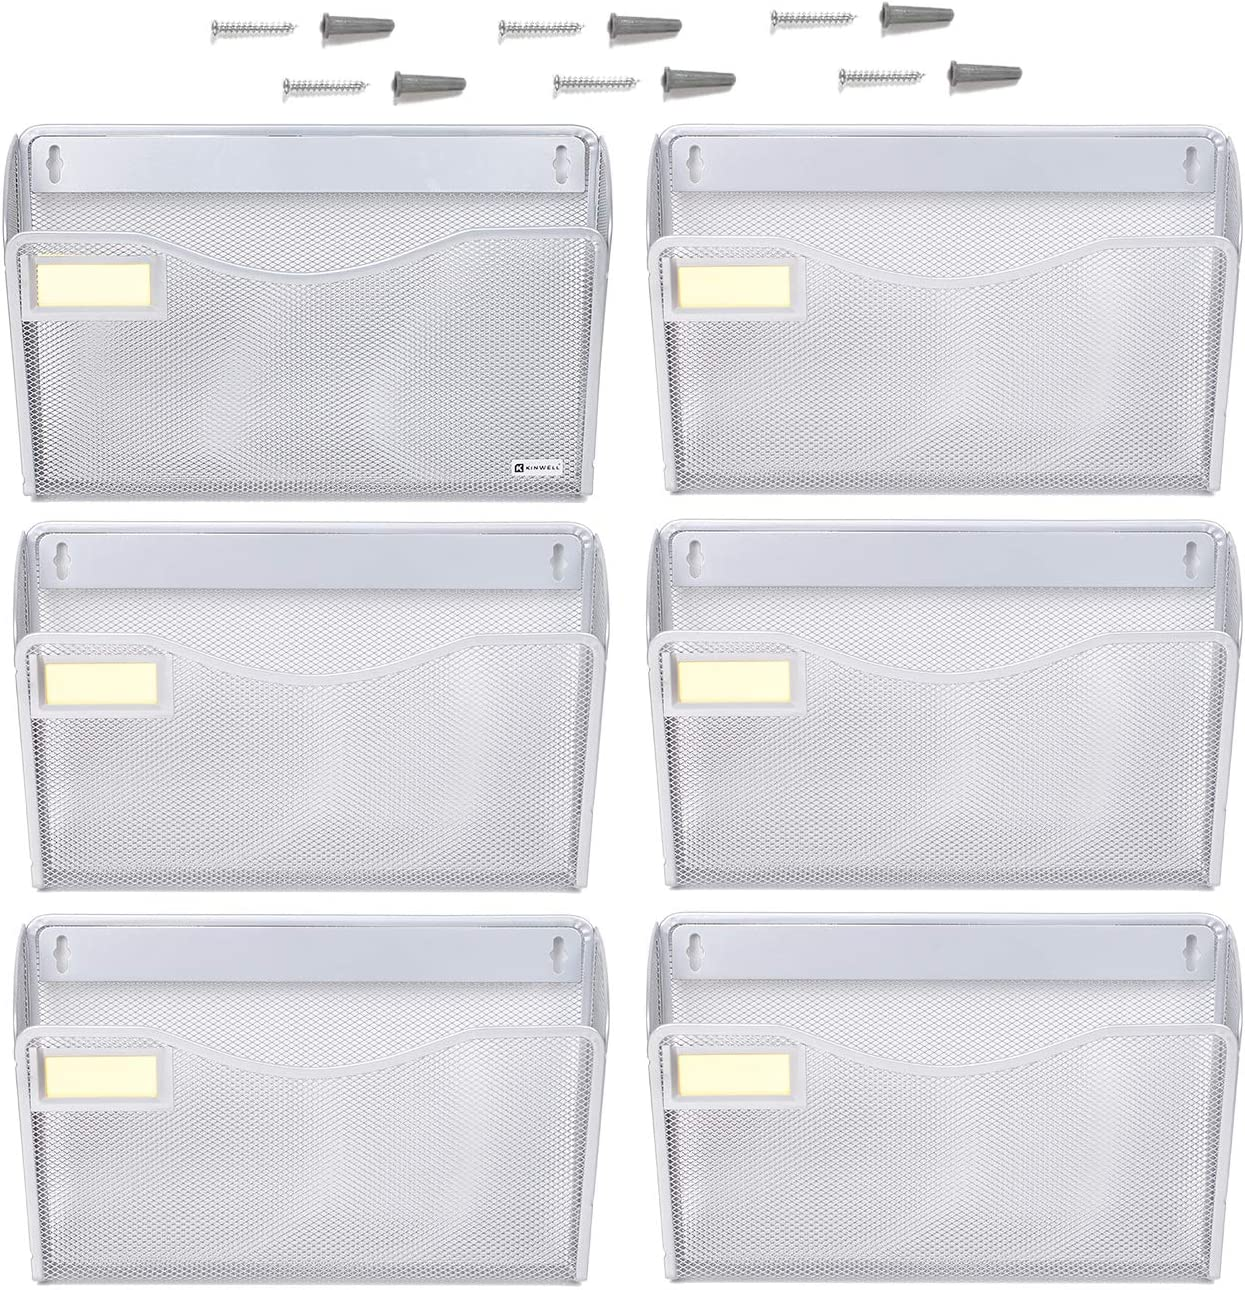 6 Pack Office Hanging Mesh Letter-Size Wall File Holder Organizer with Tag Slot Single Vertical Collection Pocket Set Multi-Purpose Organizer Display Magazines Mail Sorter & Magazine Rack (Silver)